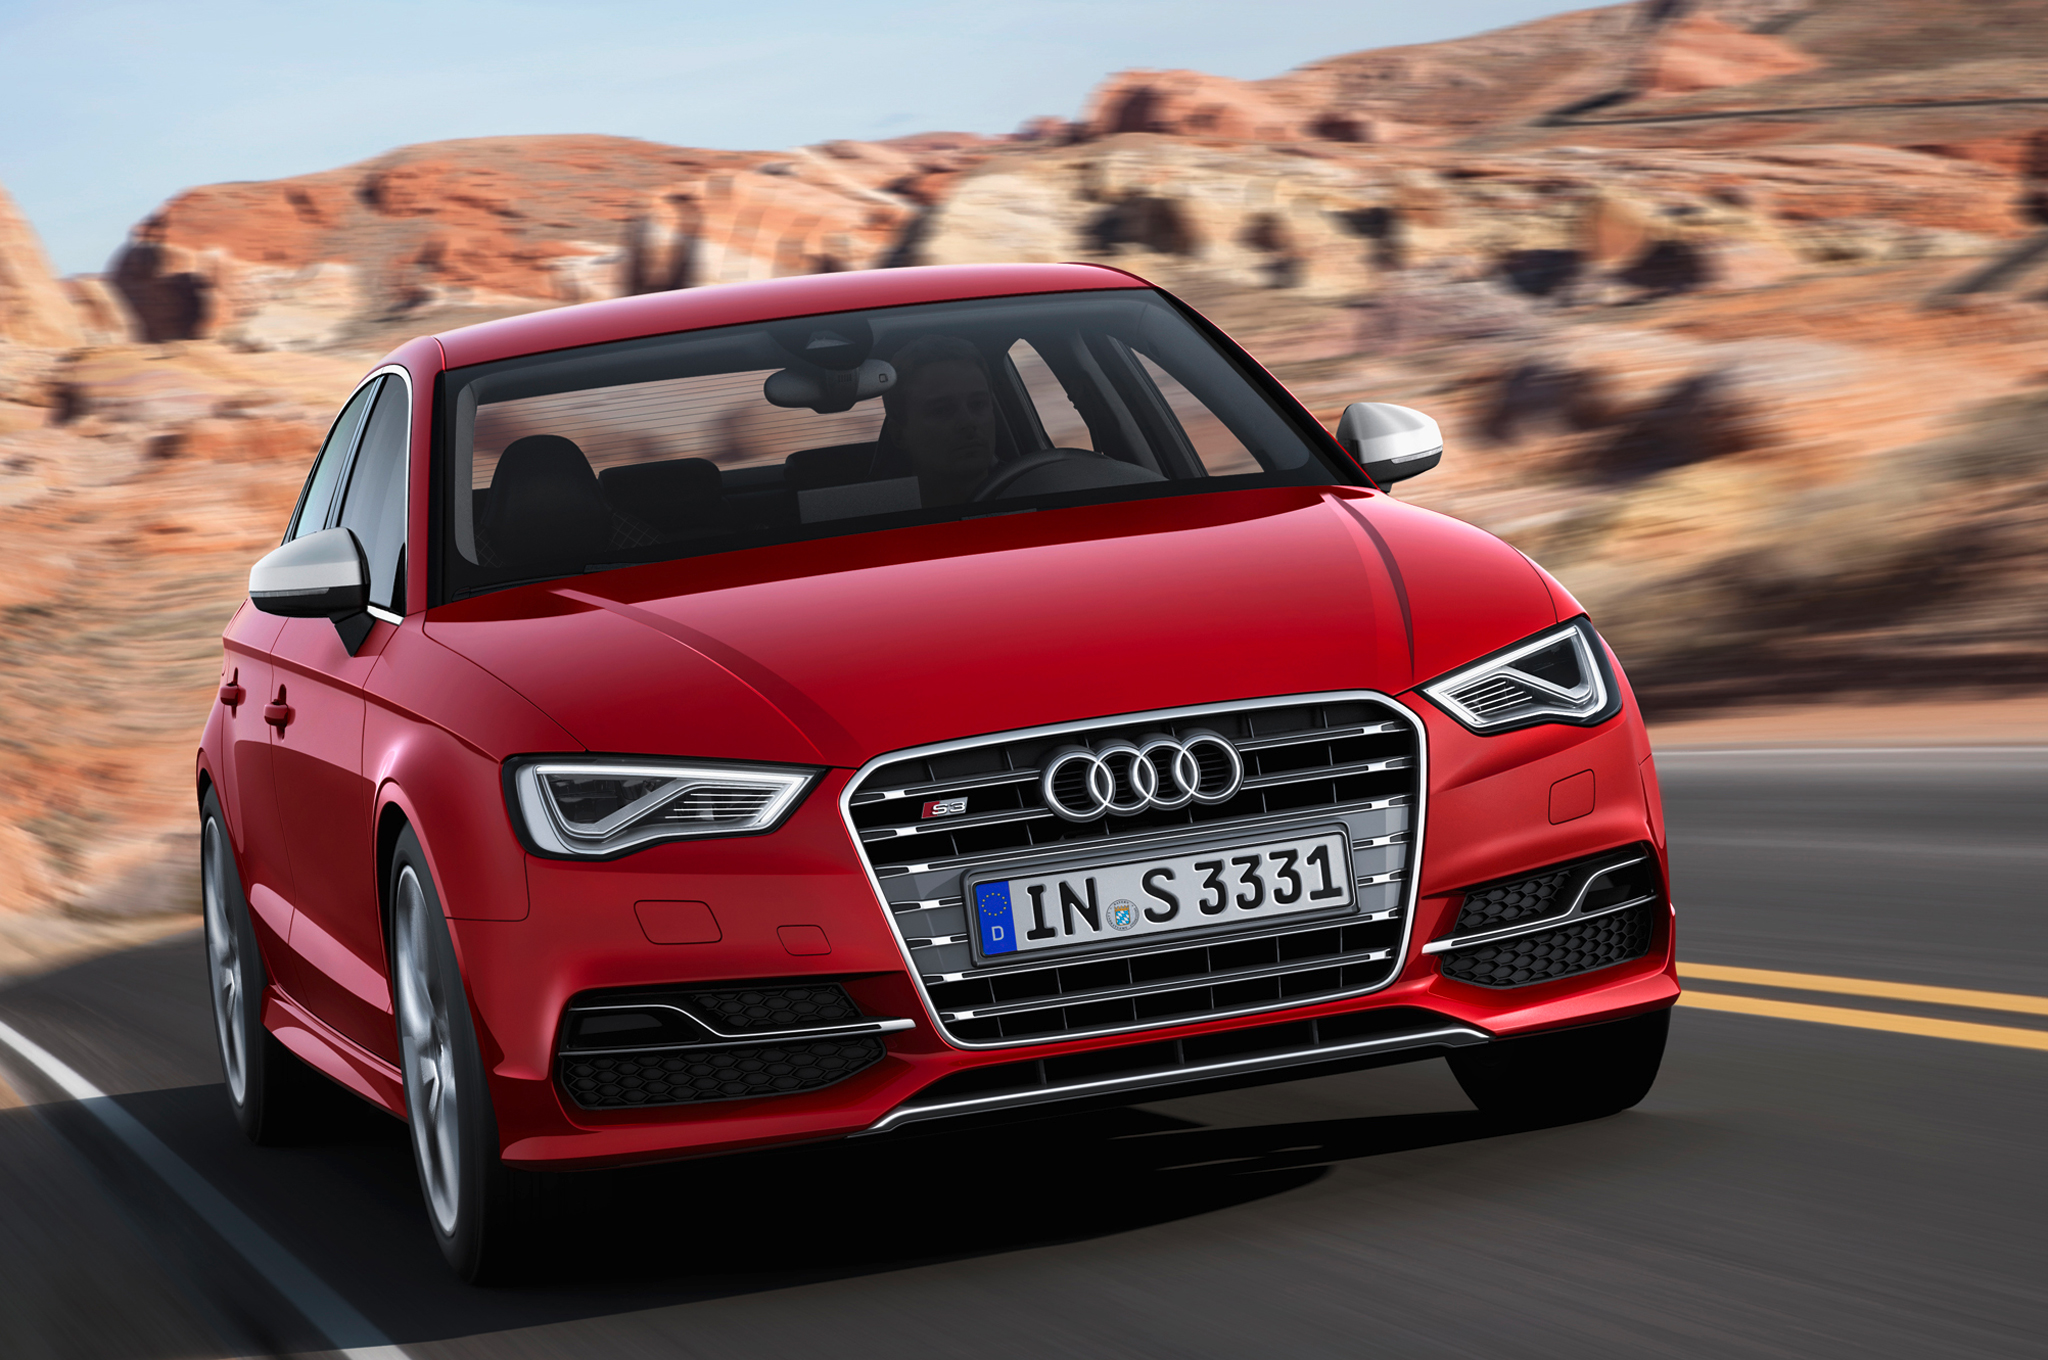 2015 Audi S3 Starts at $41,995, A3 TDI, Cabriolet Also Priced